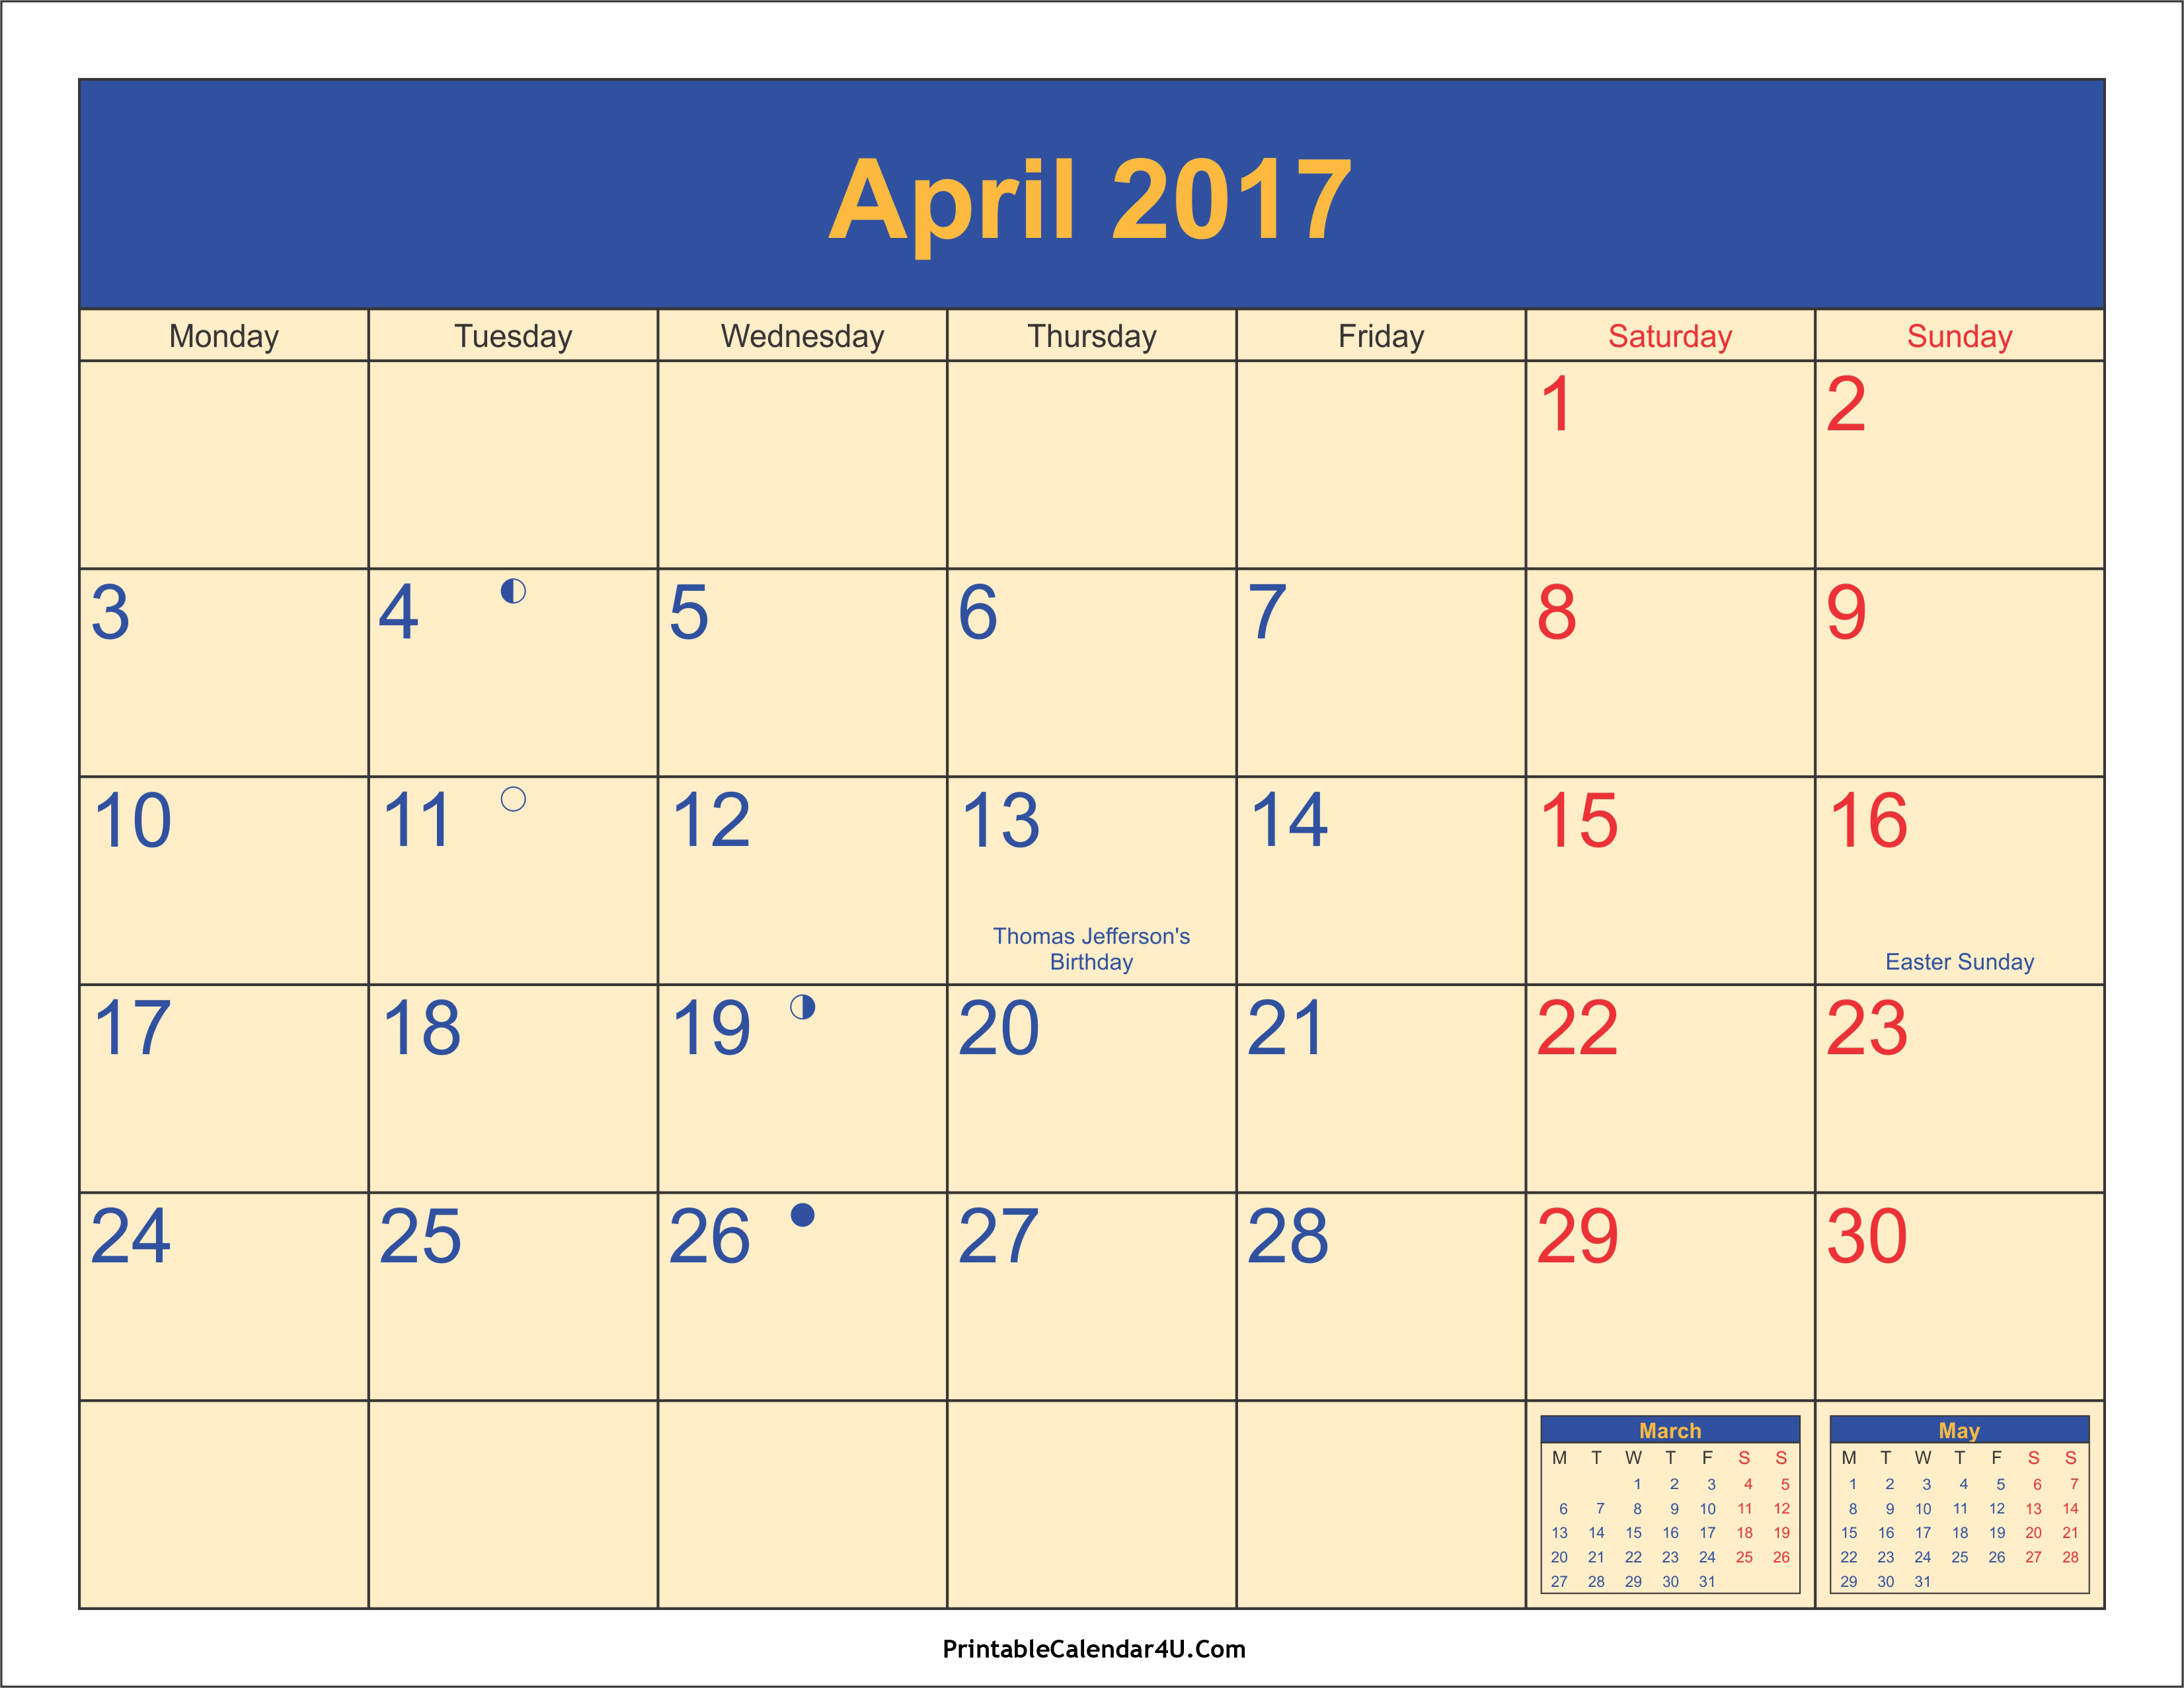 Holidays and observances in Sri Lanka in 2017 - Time and Date